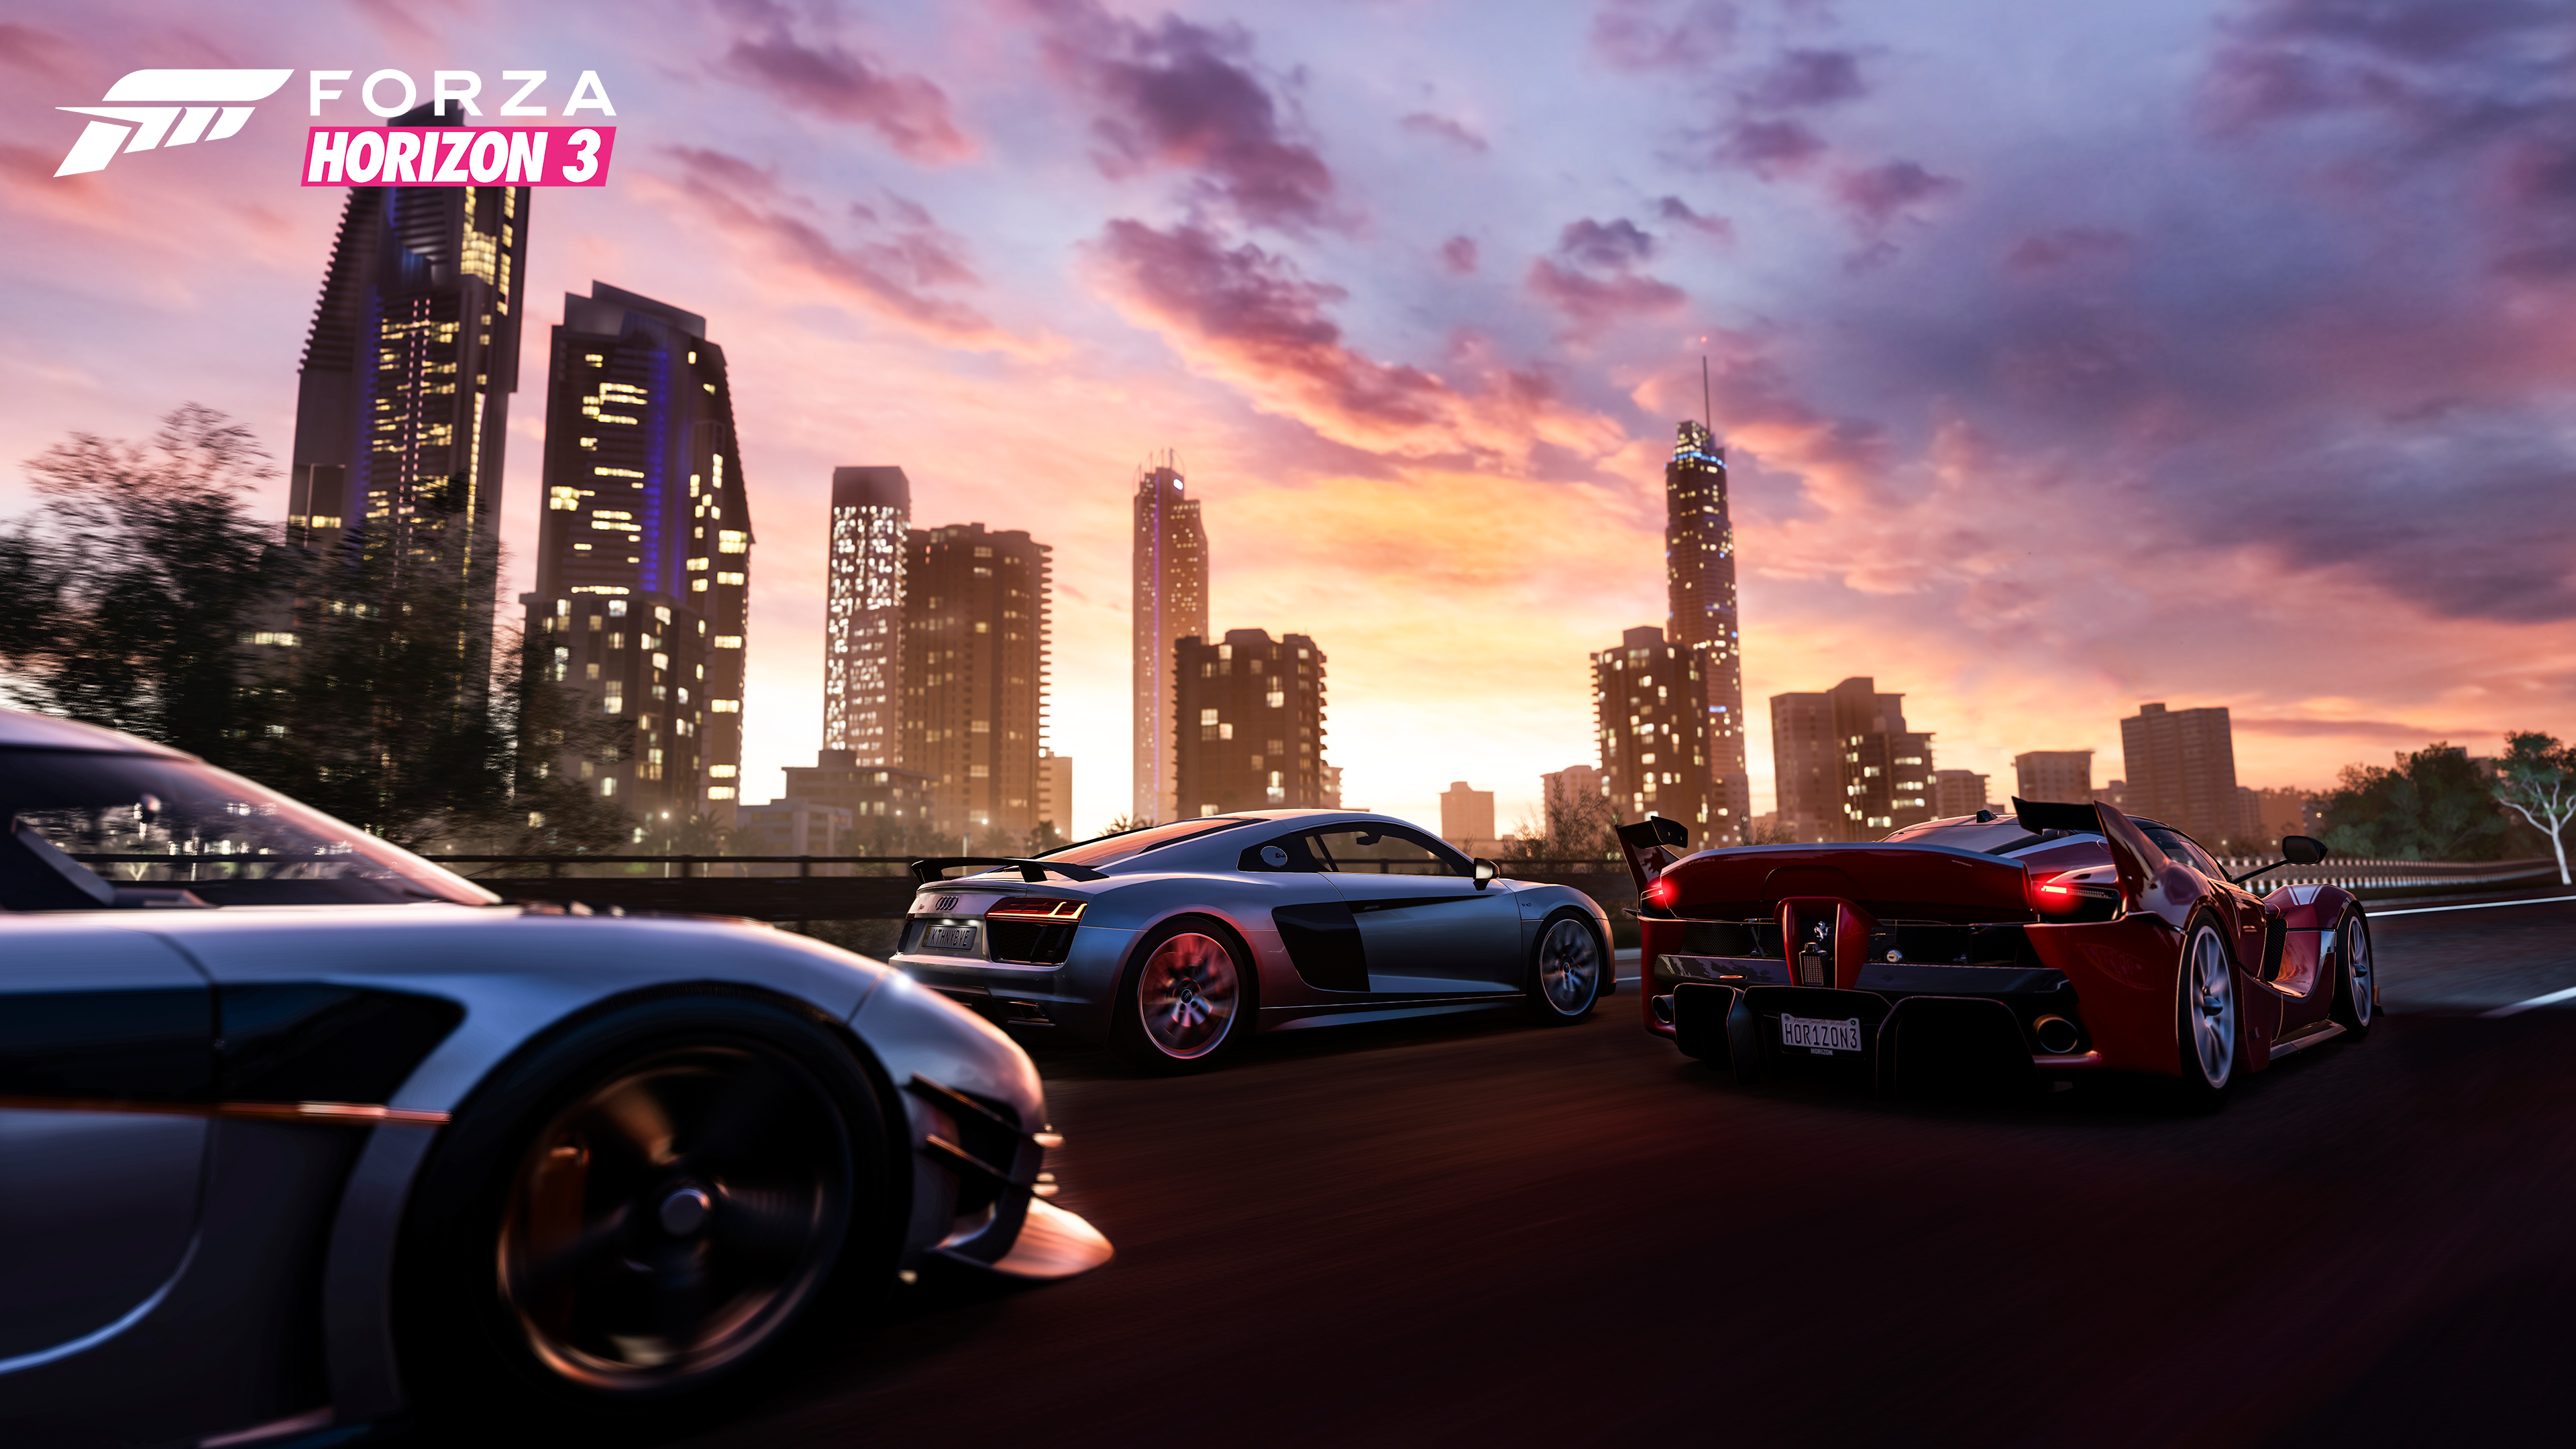 Significant update for Forza Horizon 3 coming in May 2017